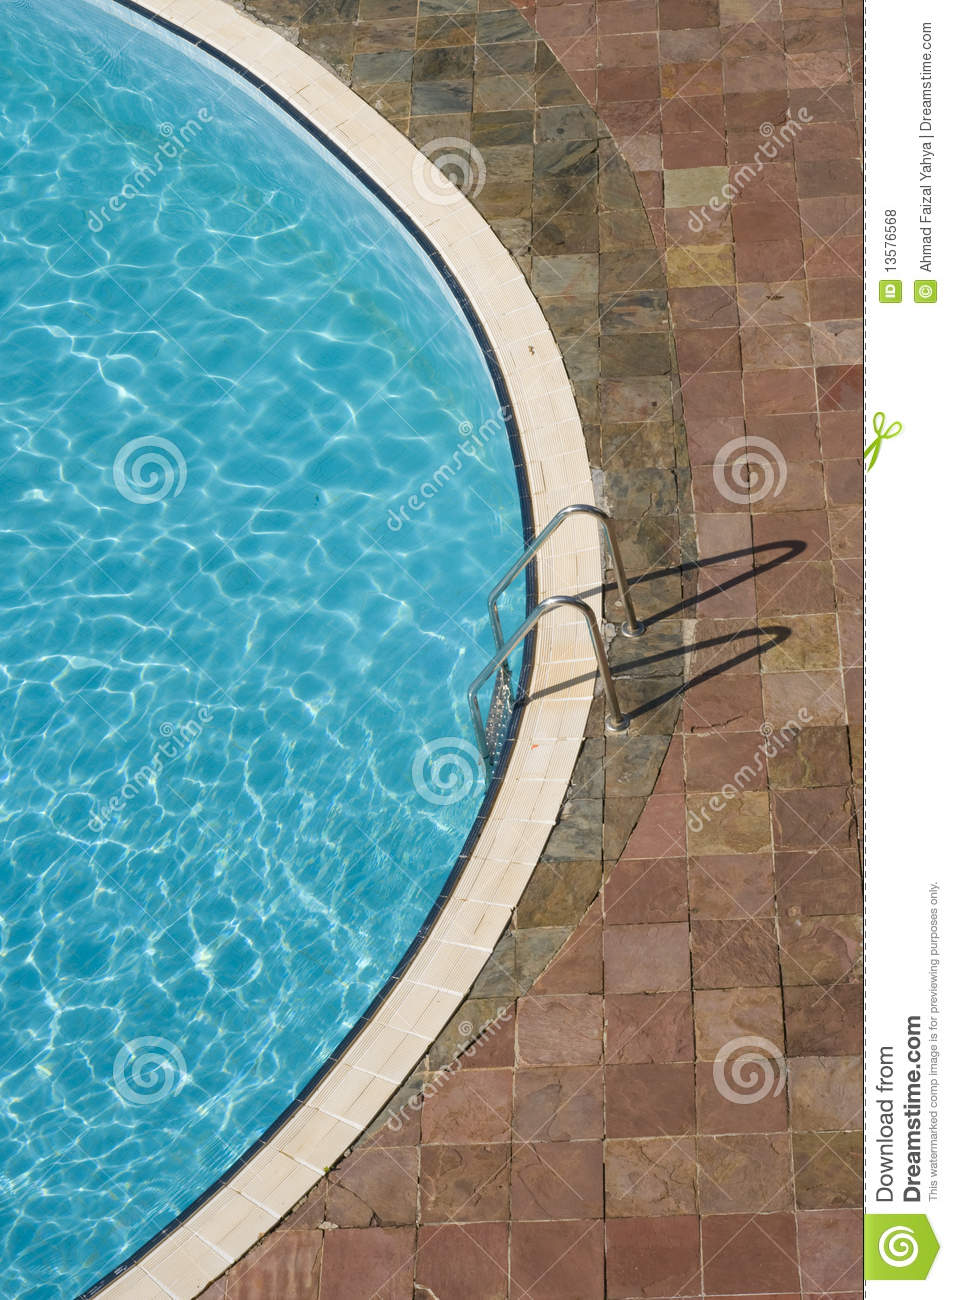 12 529 Top View Swimming Pool Photos Free Royalty Free Stock Photos From Dreamstime